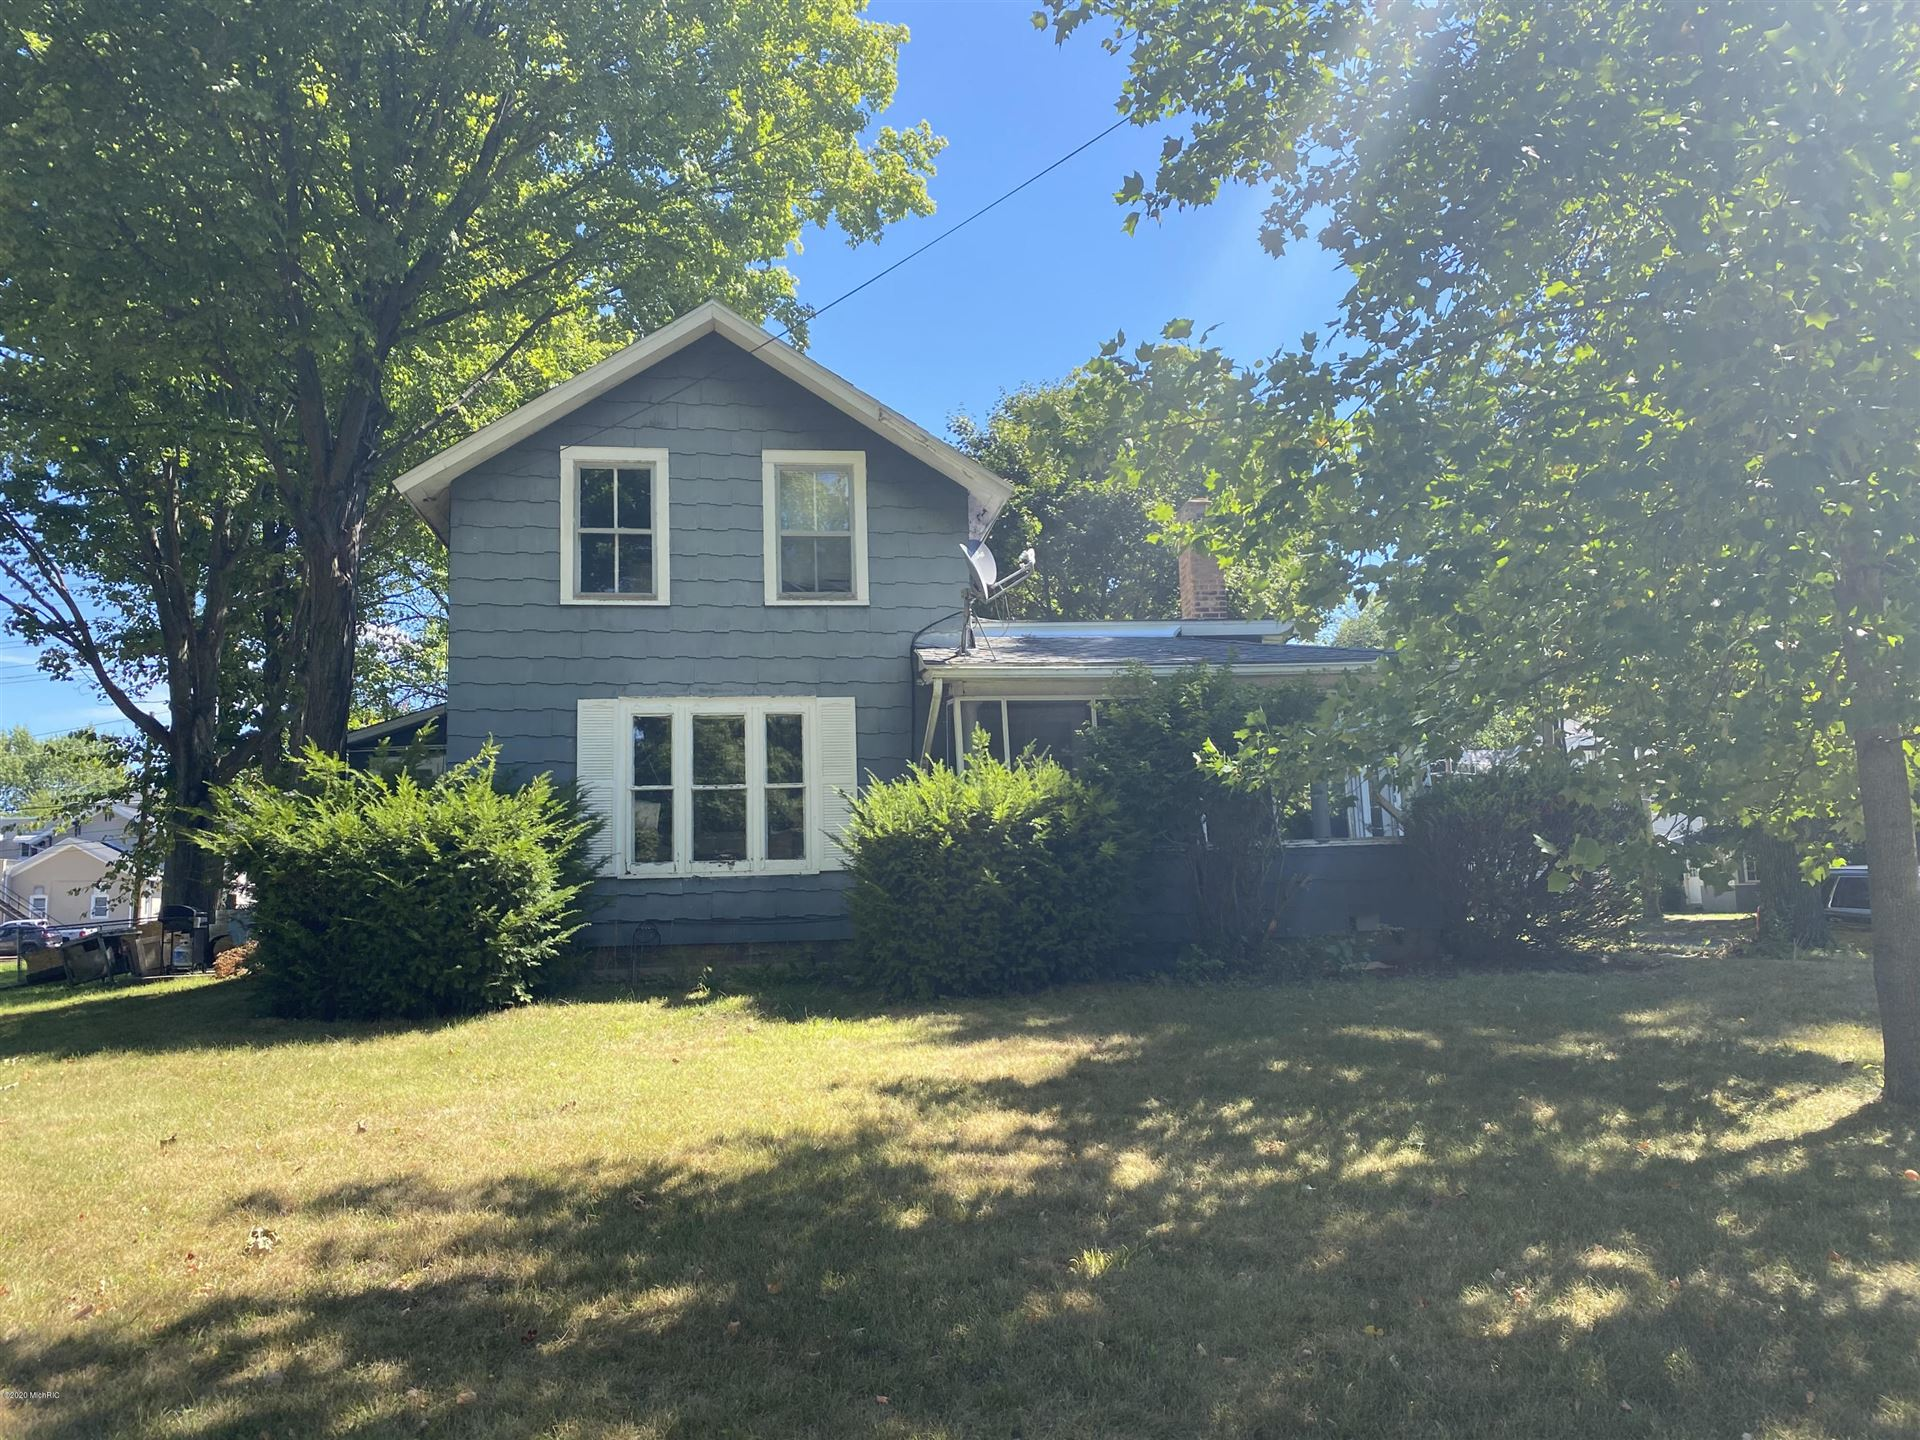 47 S West Street, Hillsdale, MI 49242 - MLS#: 20036010